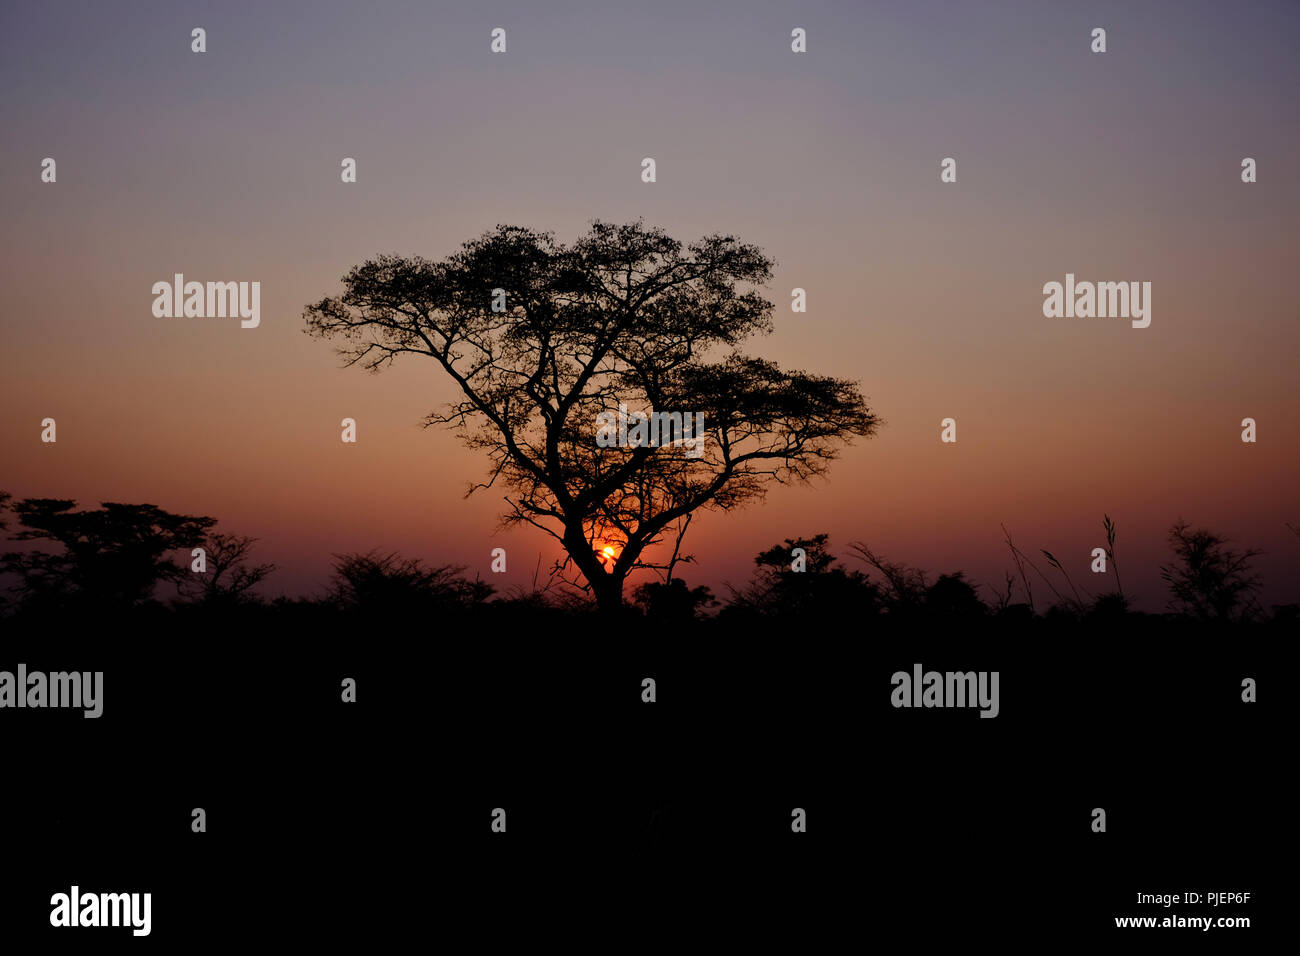 African sunset in Botswana with Acacia tree in silhouette - Stock Image